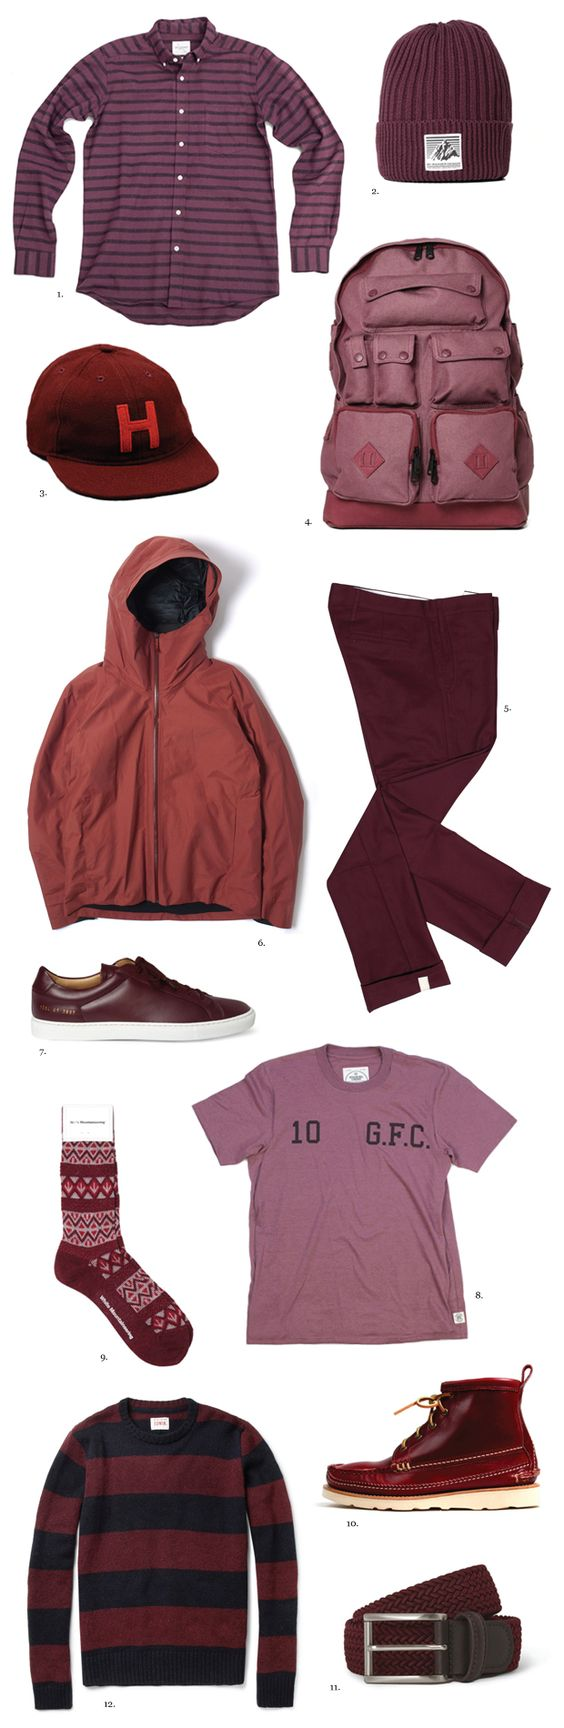 F R E E / M A N - Articles - Burgundy